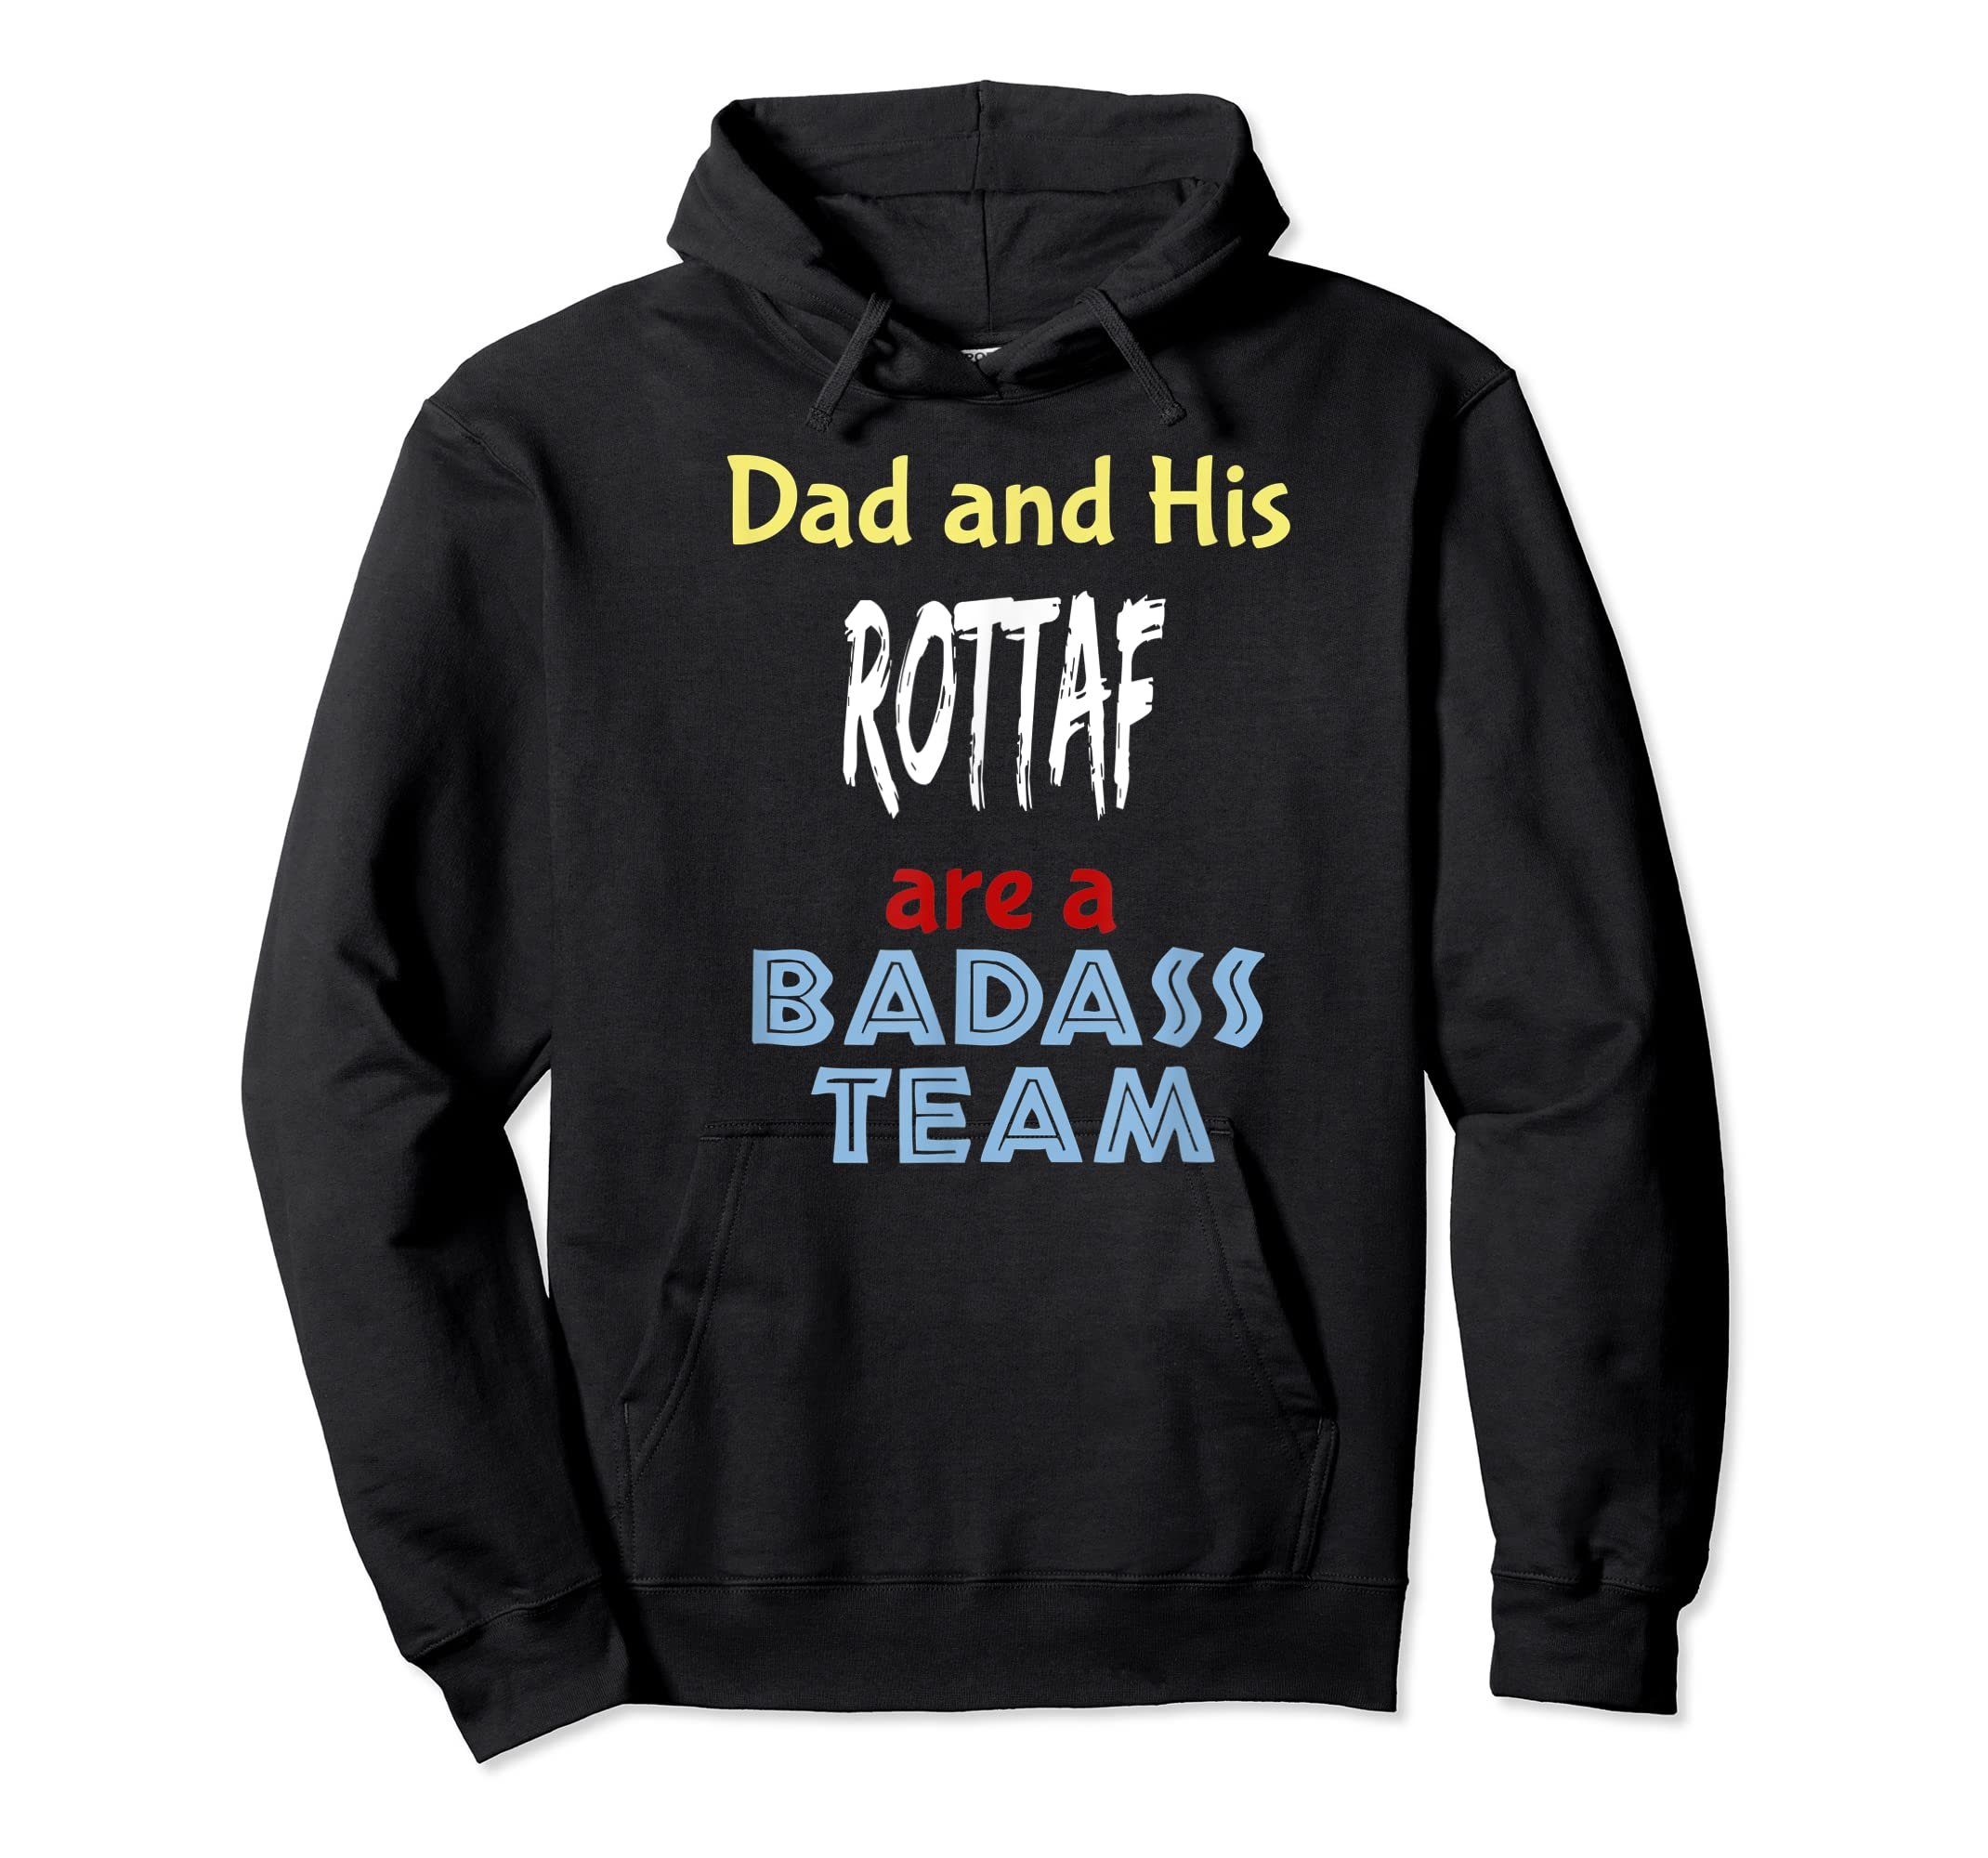 Mens Rottaf Dog Shirt Love Rottweiler + Afghan Hound =  T-Shirt-Hoodie-Black